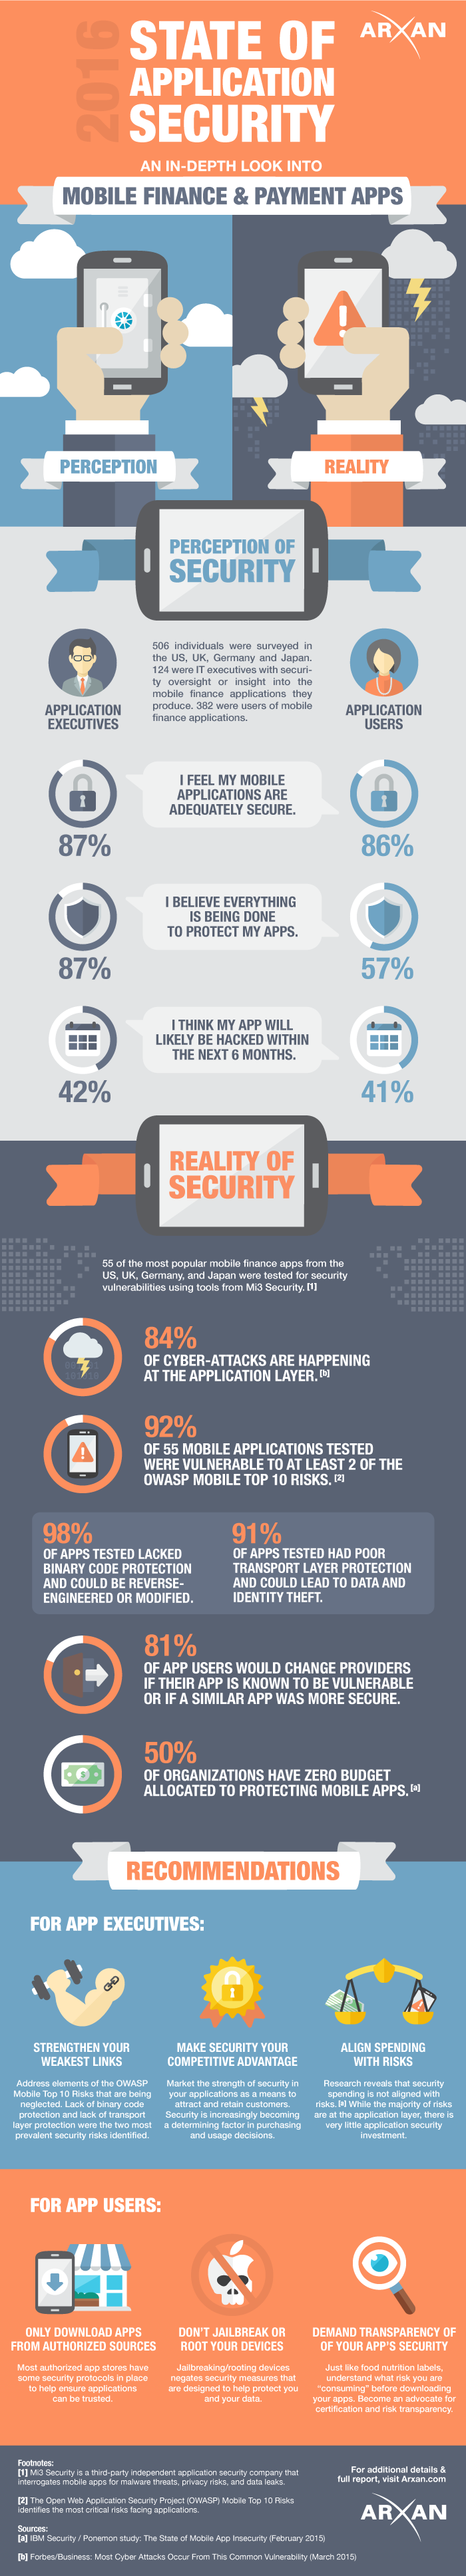 INFOGRAPHIC: THE STATE OF APPLICATION SECURITY OF MOBILE FINANCE AND SECURITY APPS